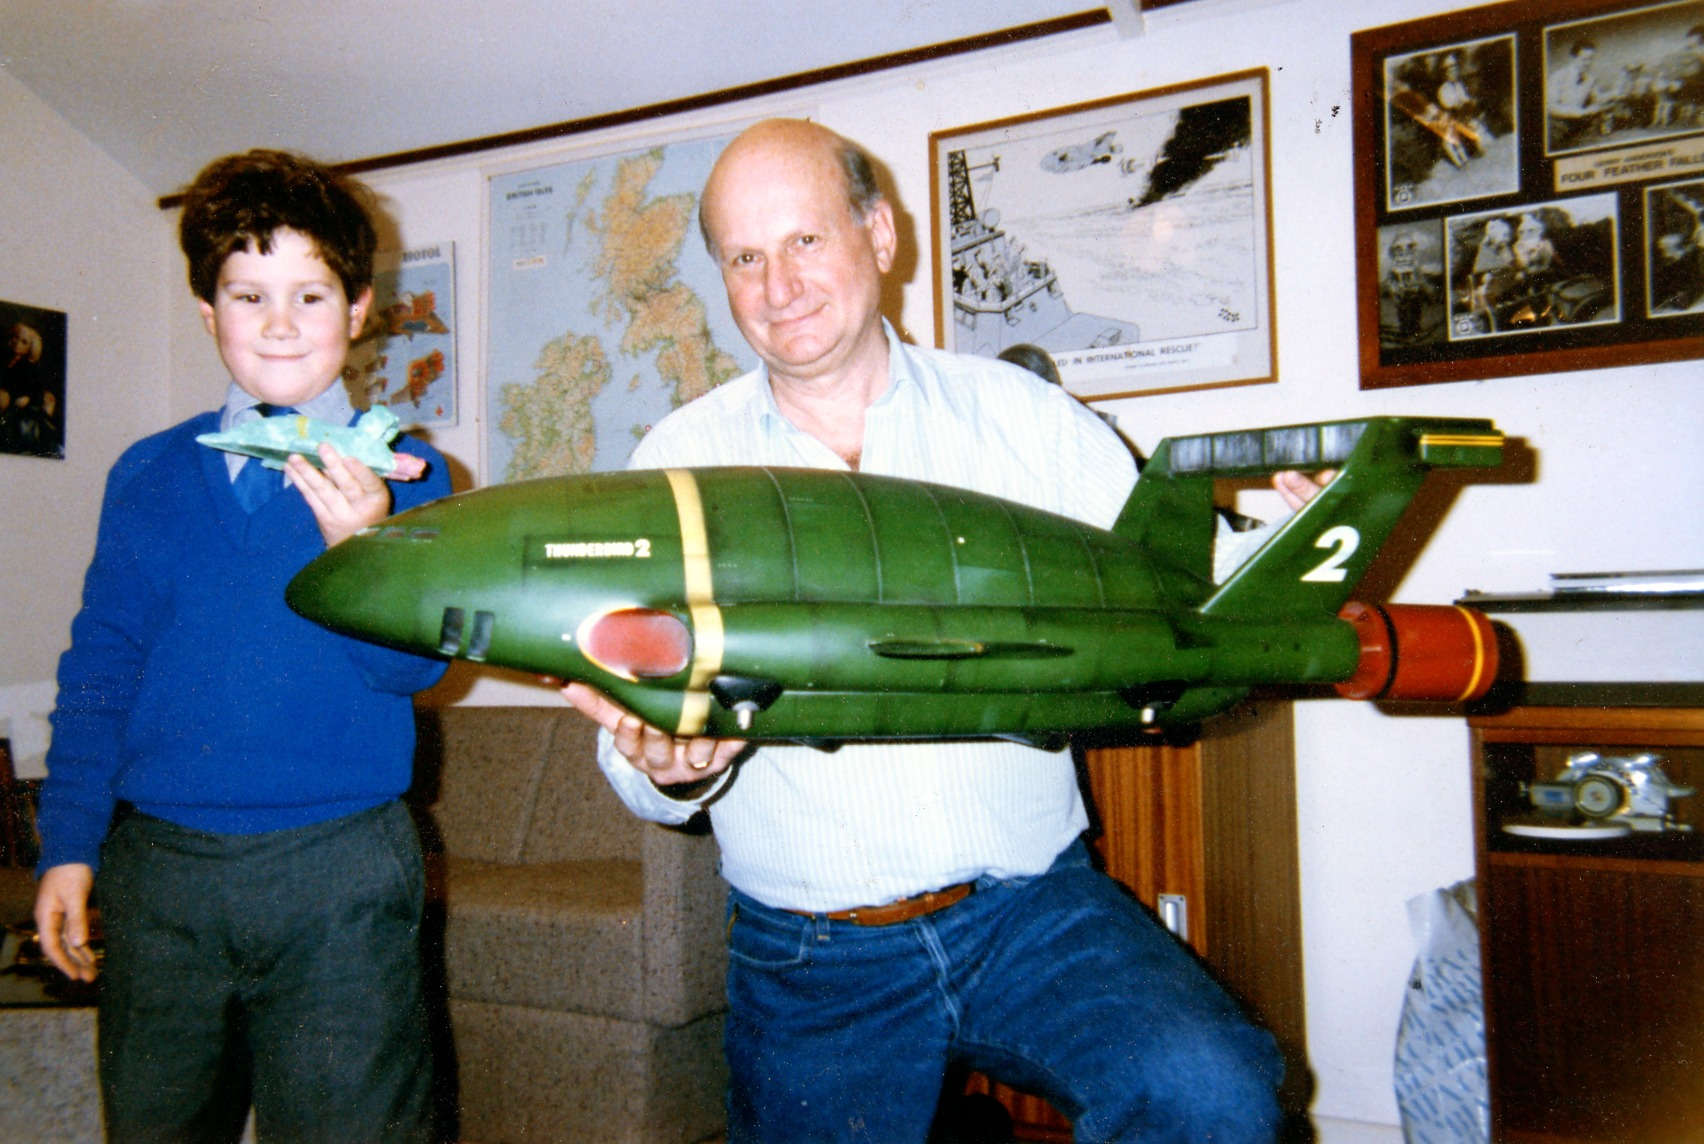 Gerry Anderson Holding Space Ship